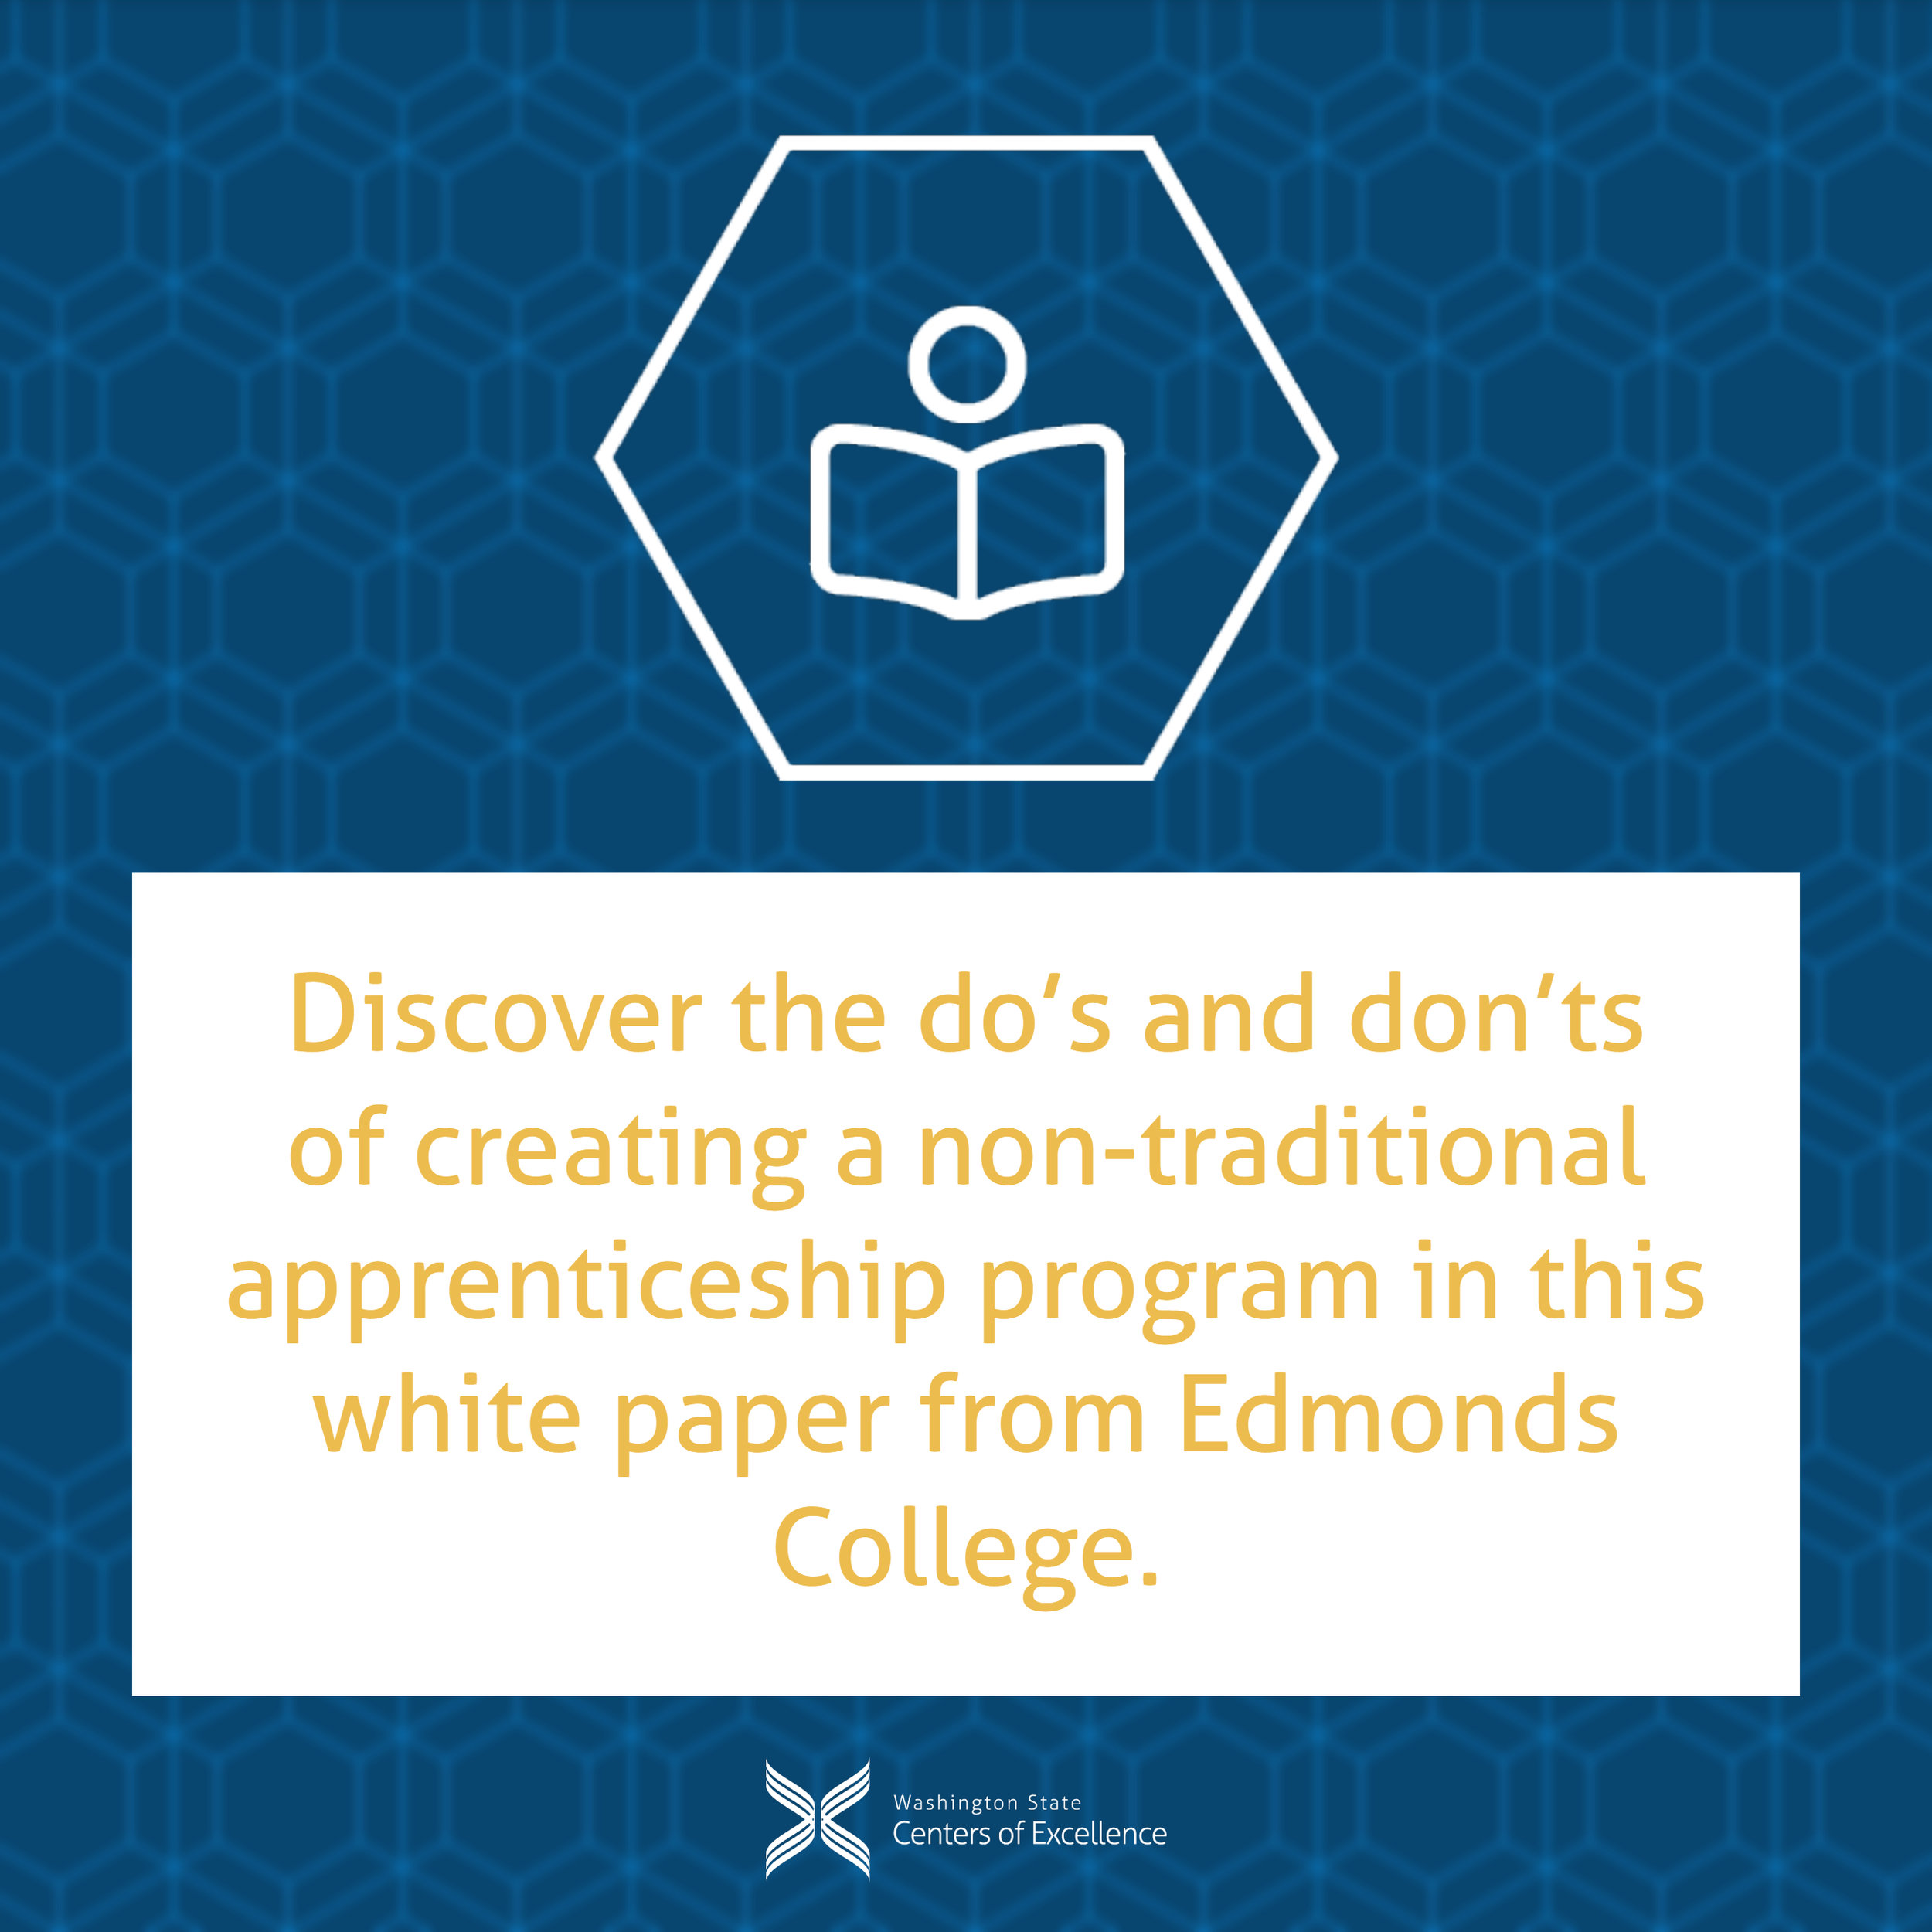 Discover the do's and don'ts of creating a non-traditional apprenticeship program in this white paper from Edmonds College.